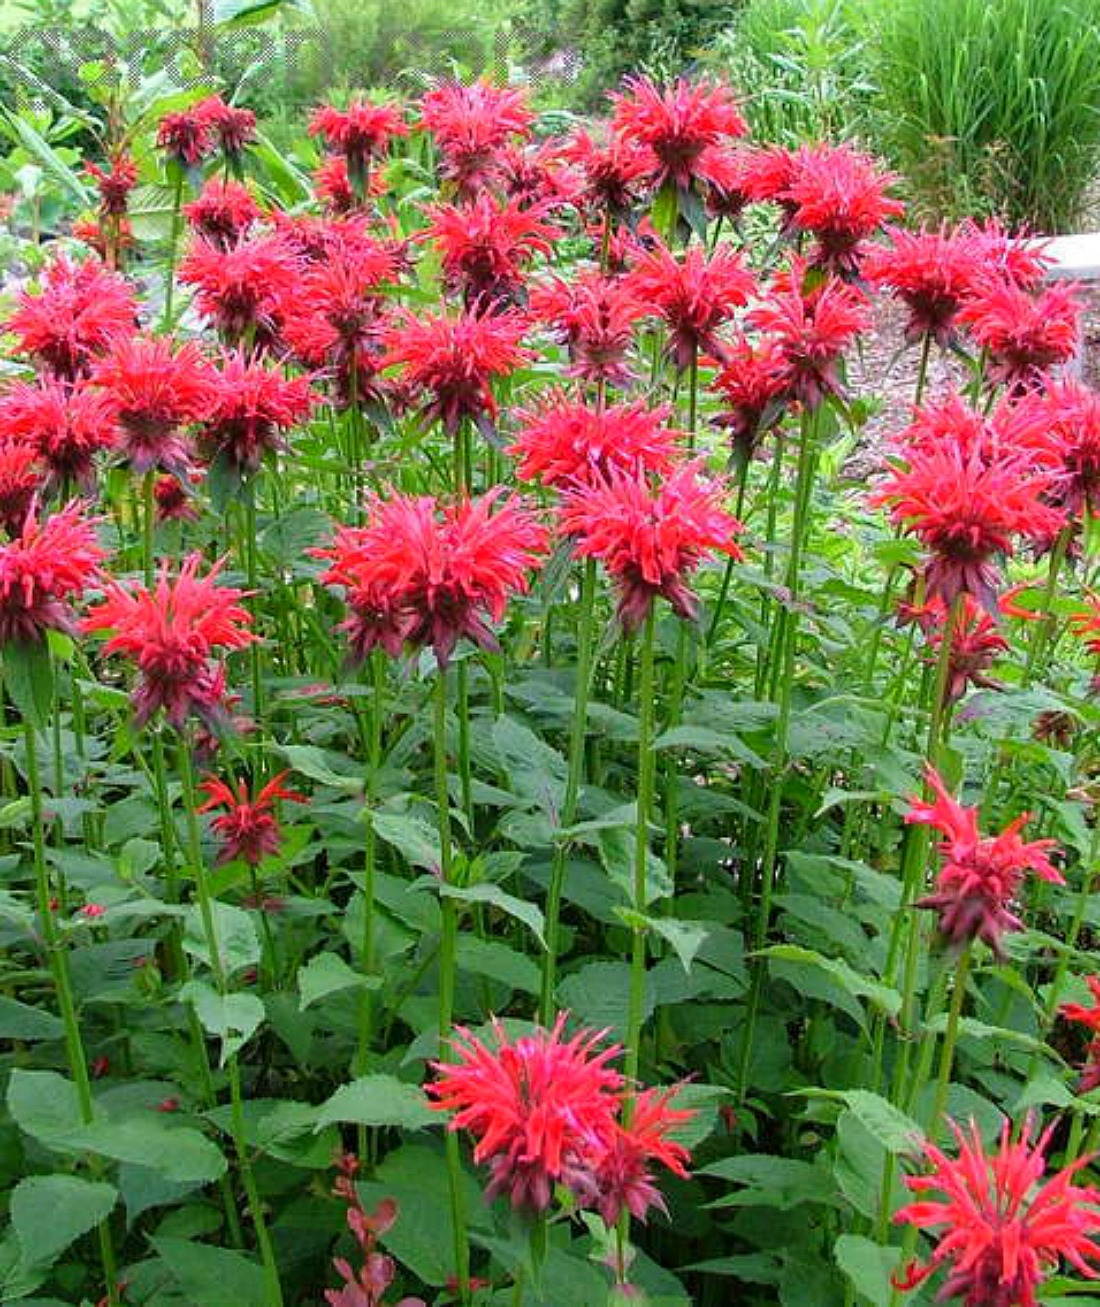 monarda bees balm showy flowers pink red purple perennial pemberton whistler super natural landscaping